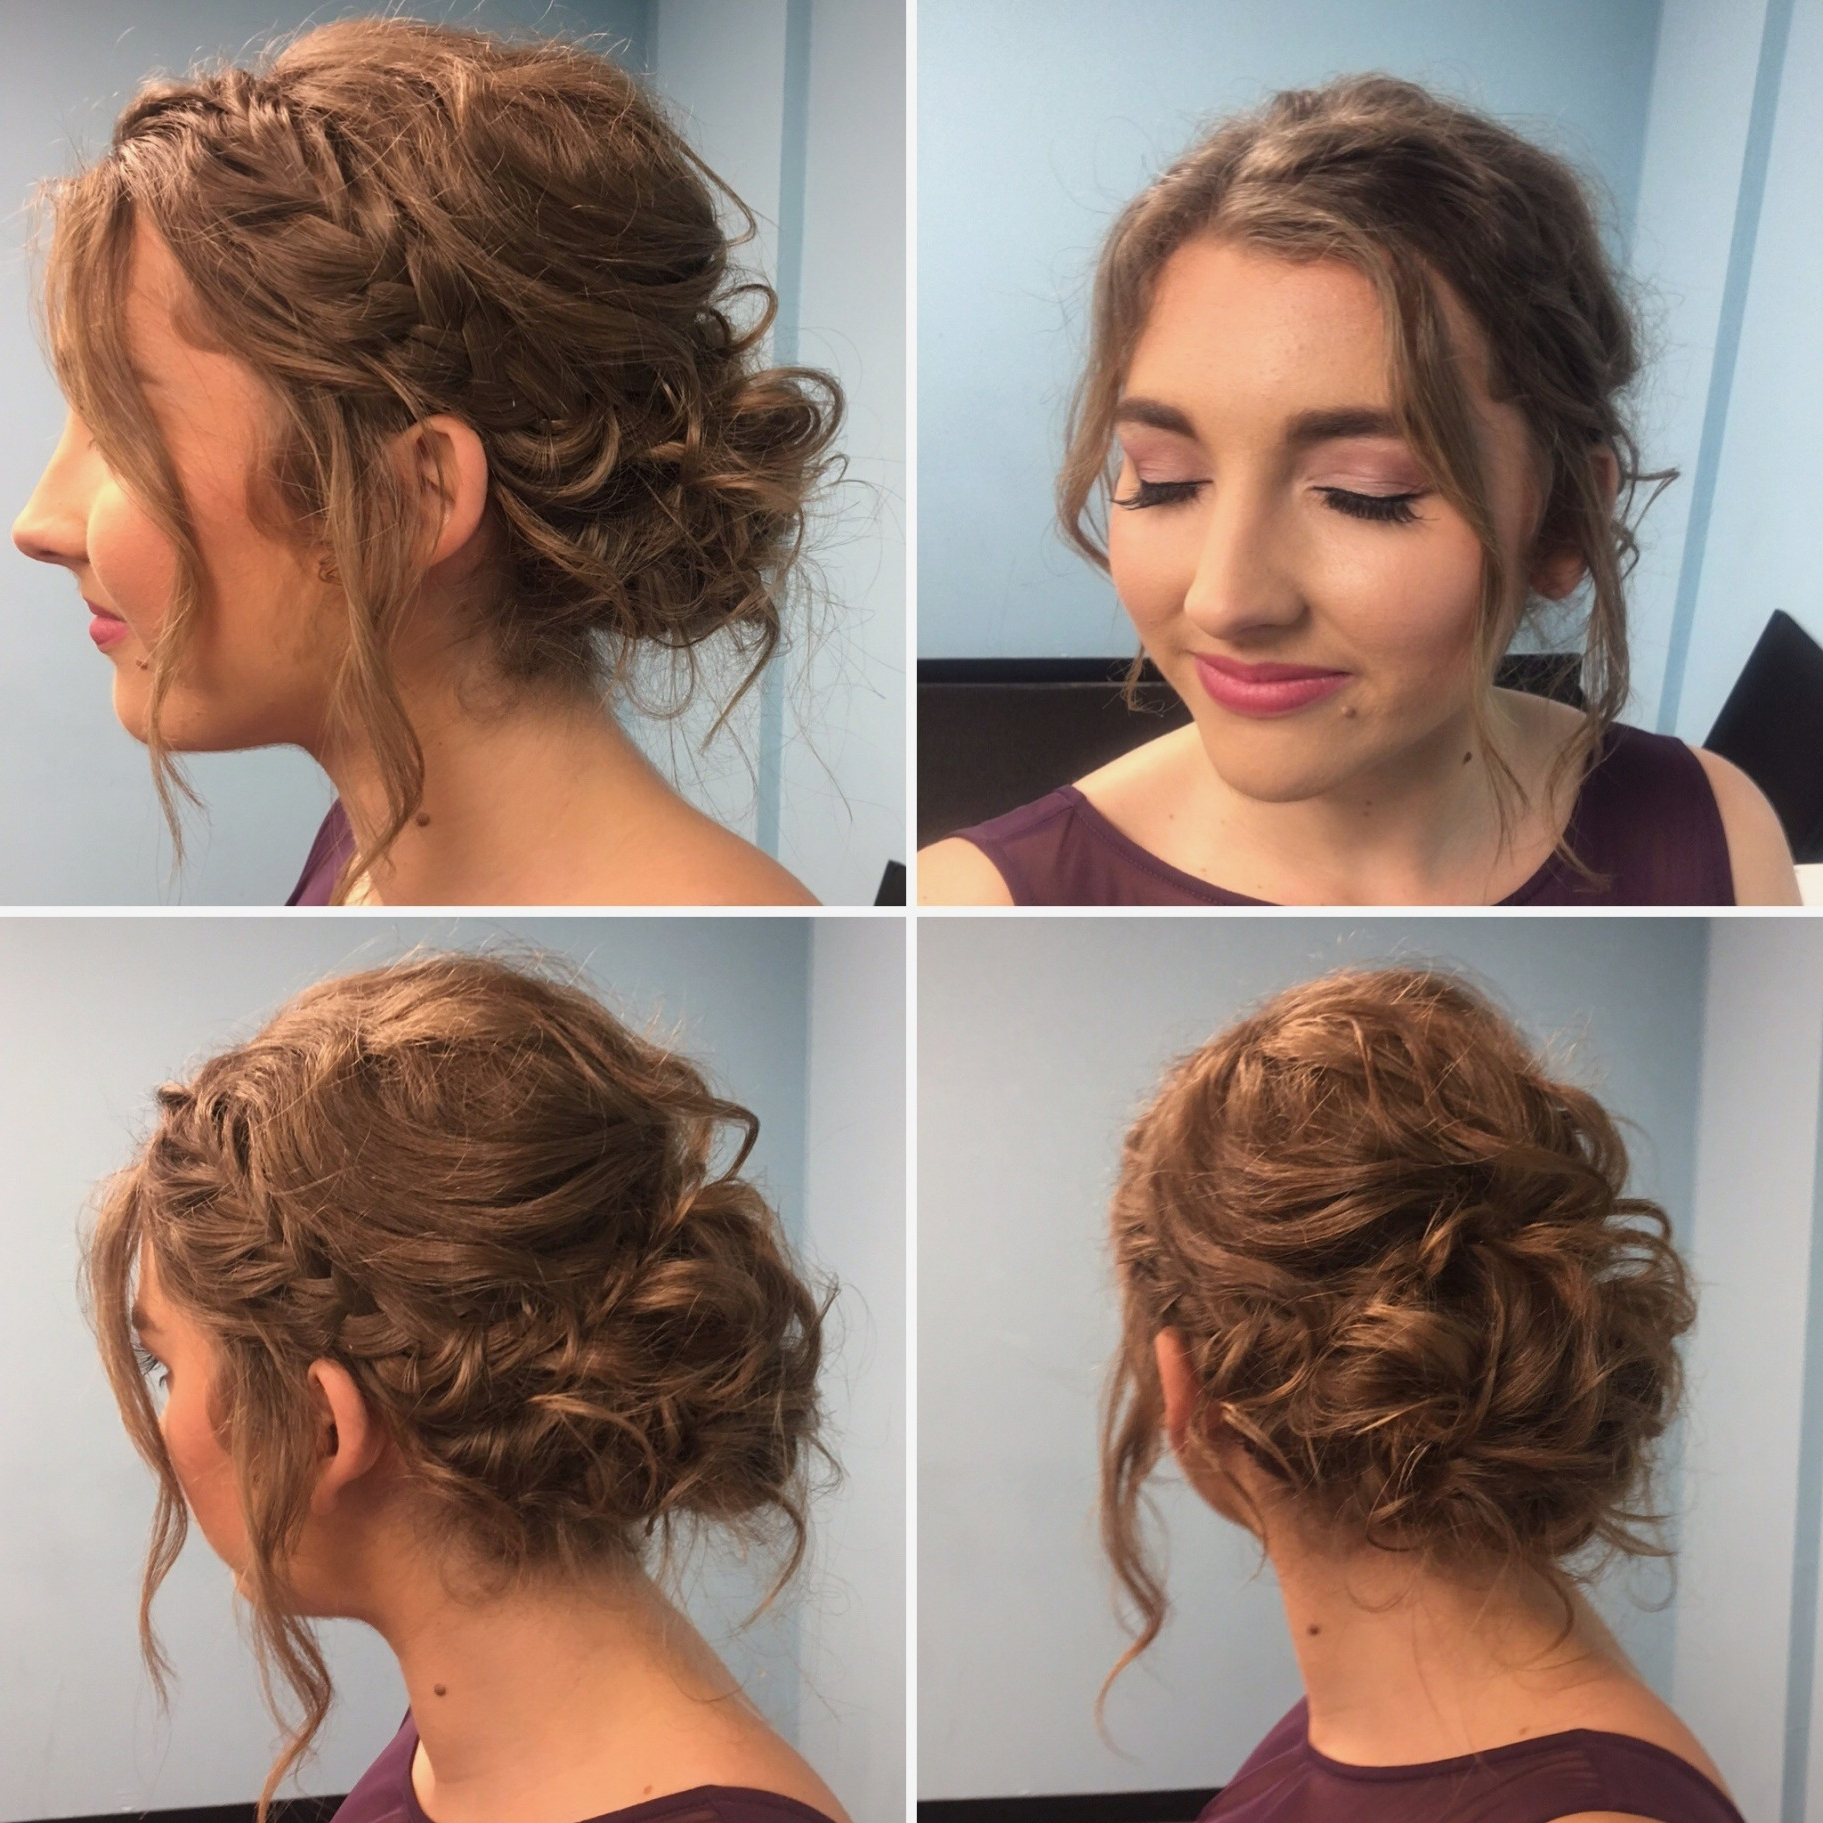 Short Hairstyles : New Bridesmaid Hairstyles For Short Hair Pics For Well Known Short Wedding Hairstyles For Bridesmaids (View 5 of 15)